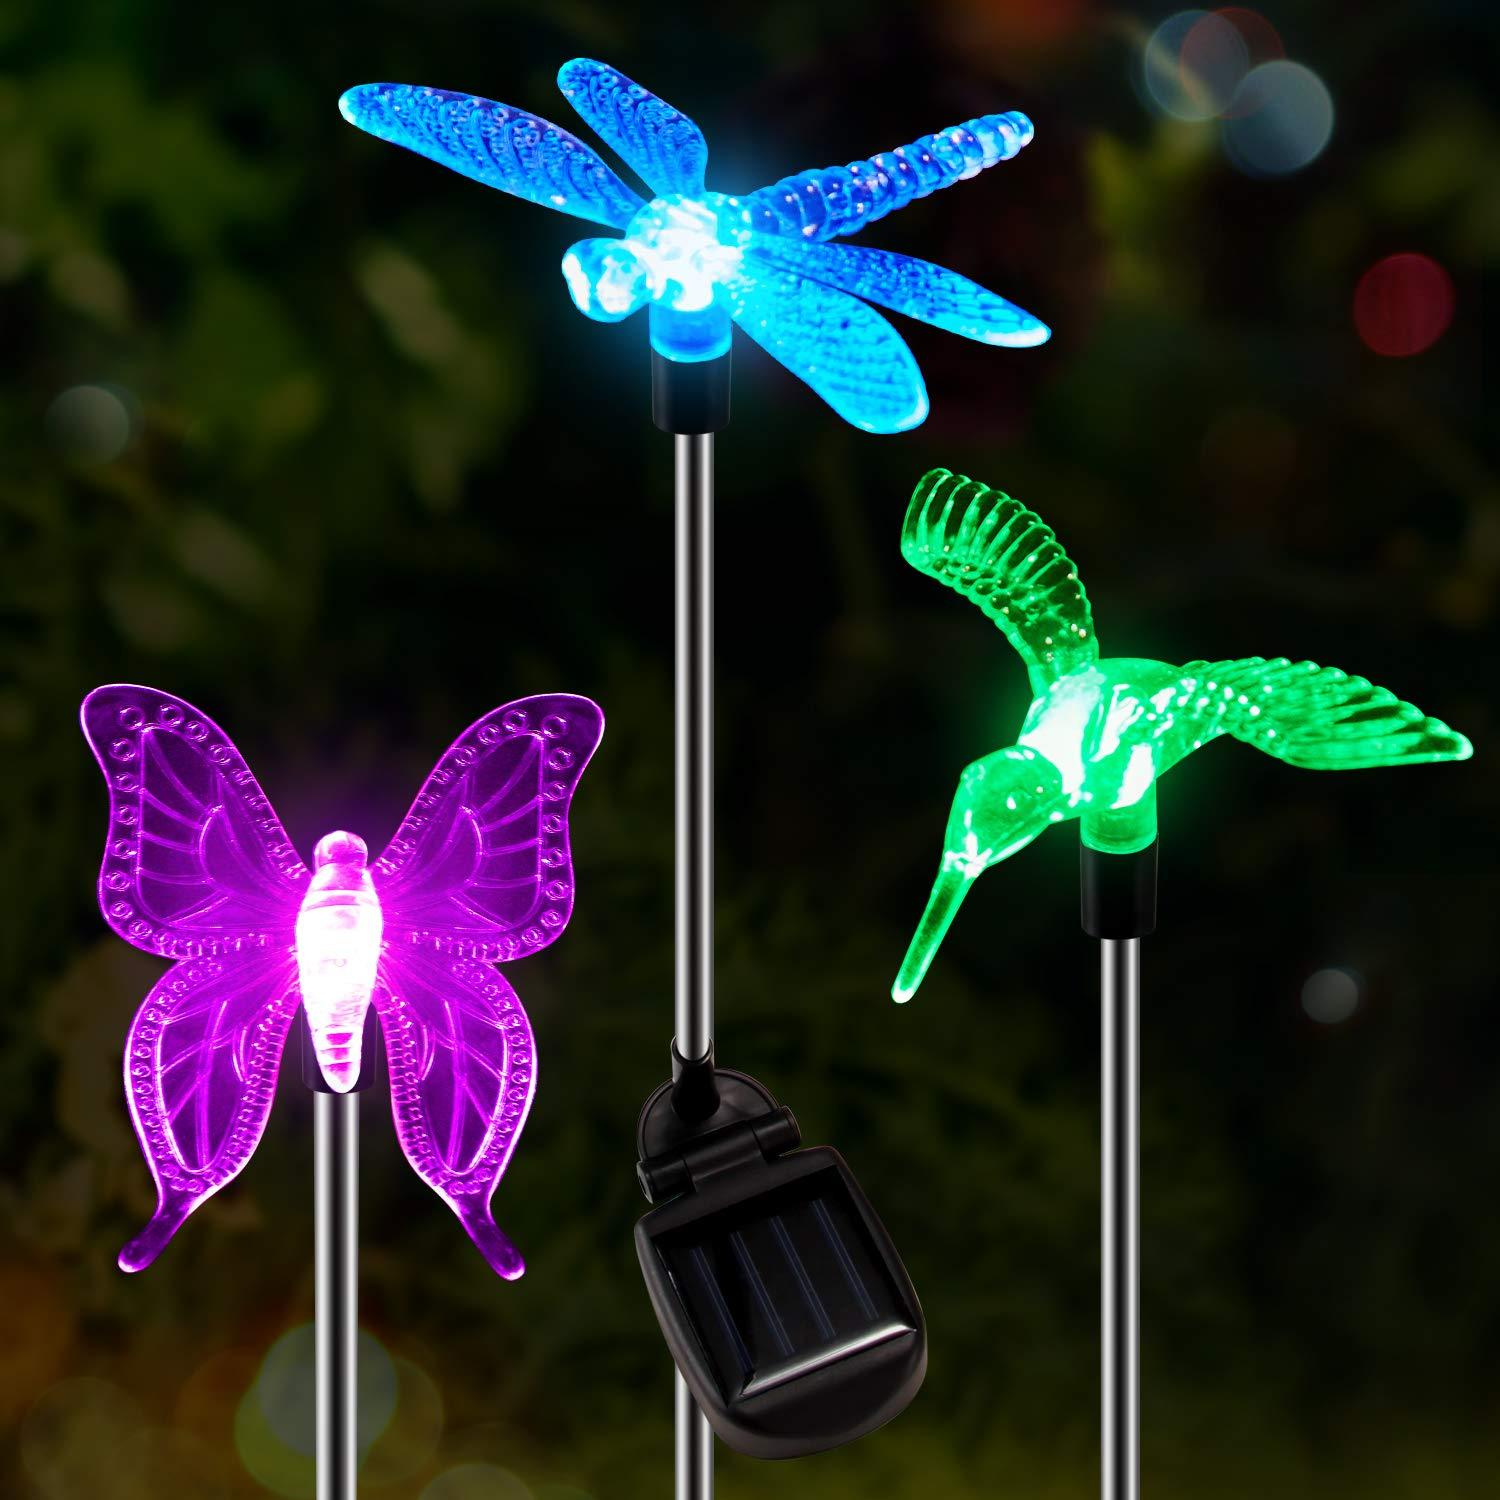 Solar-Powered LED Color Changing Light